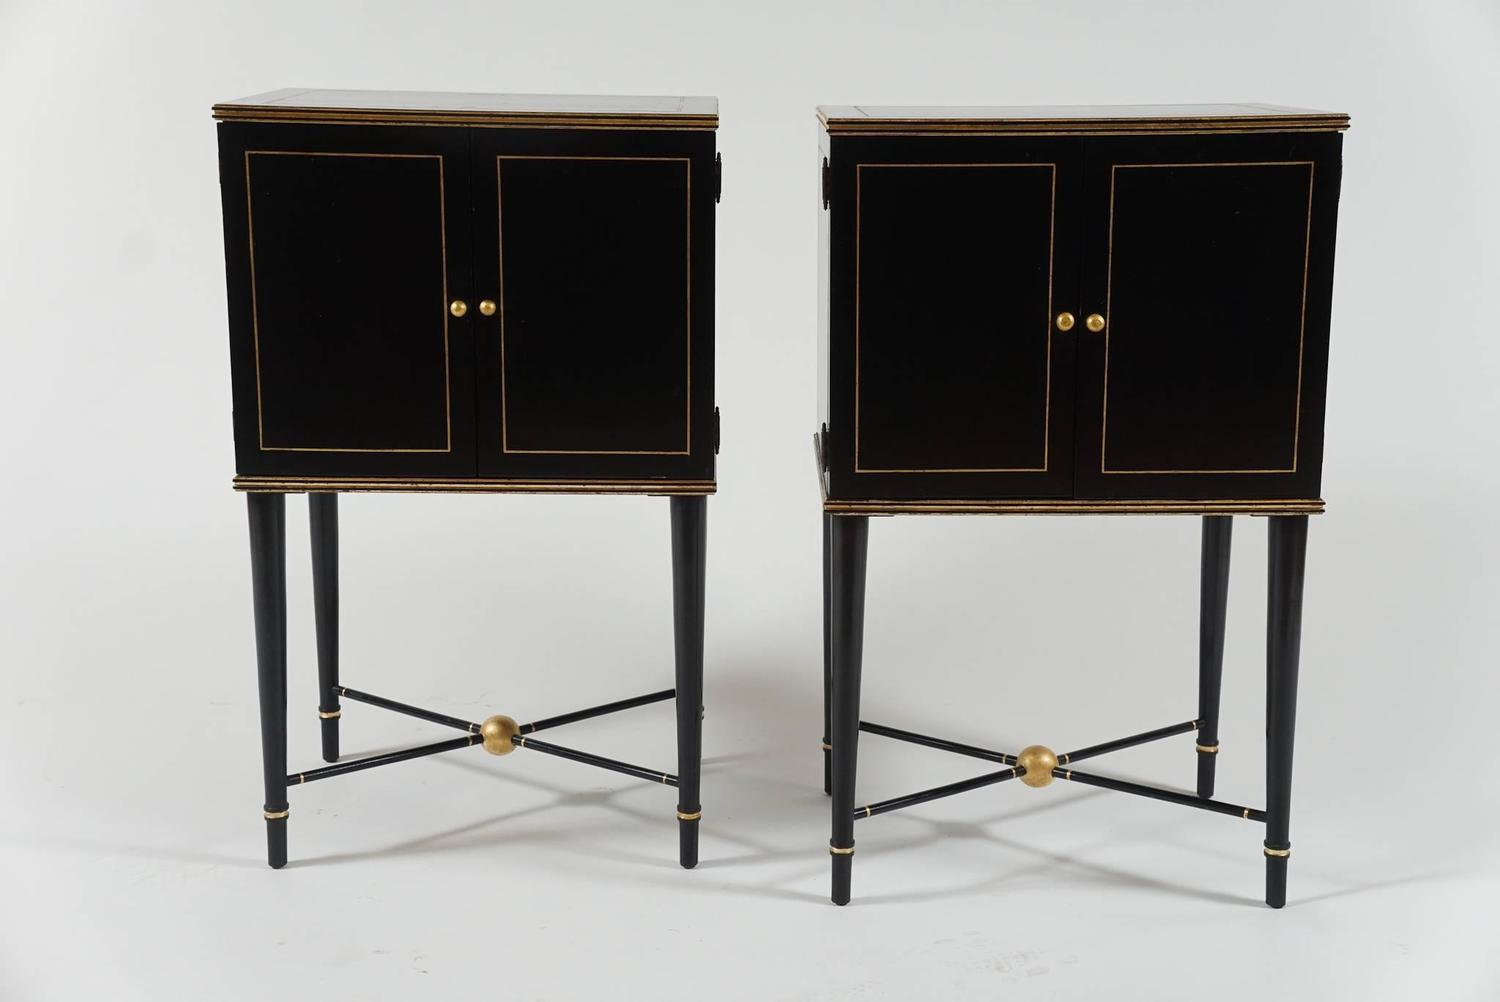 hutch kitchen furniture stylish quot deco quot cabinets with gilt detail at 1stdibs 12534